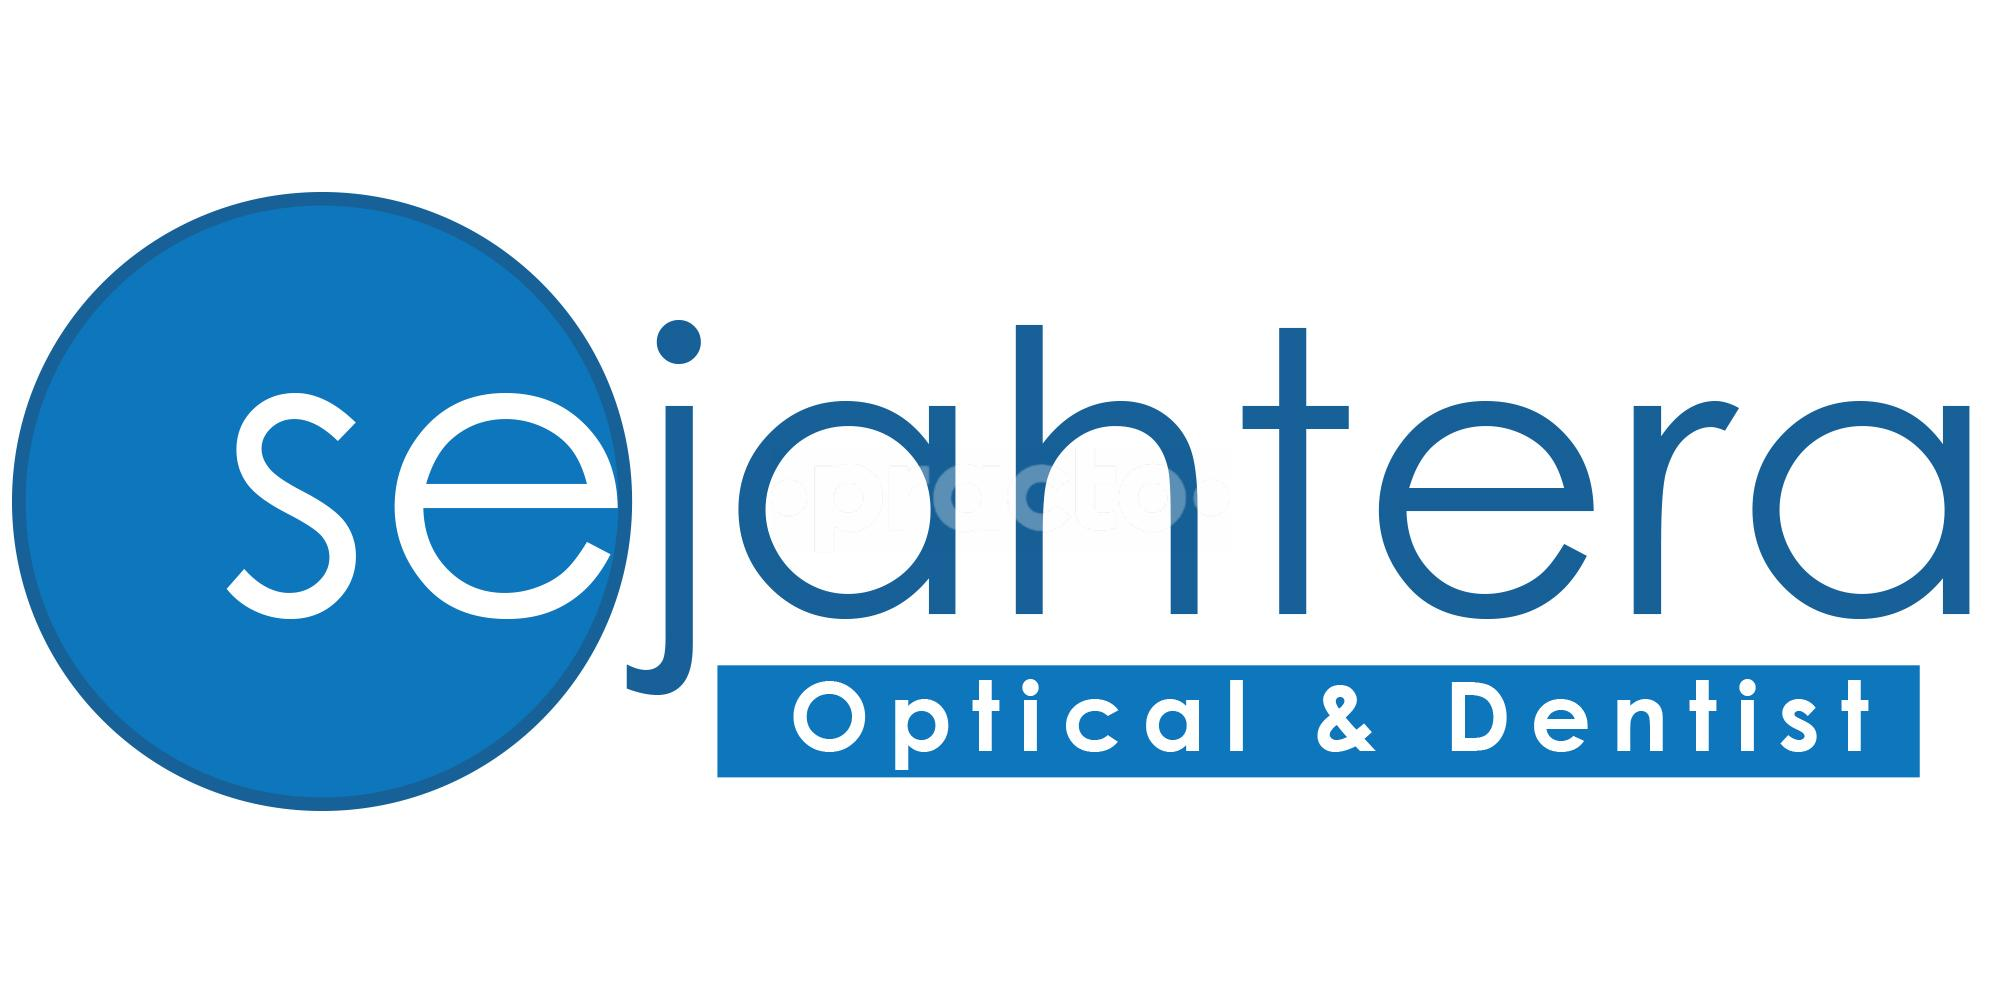 Sejahtera Optical & Dentist